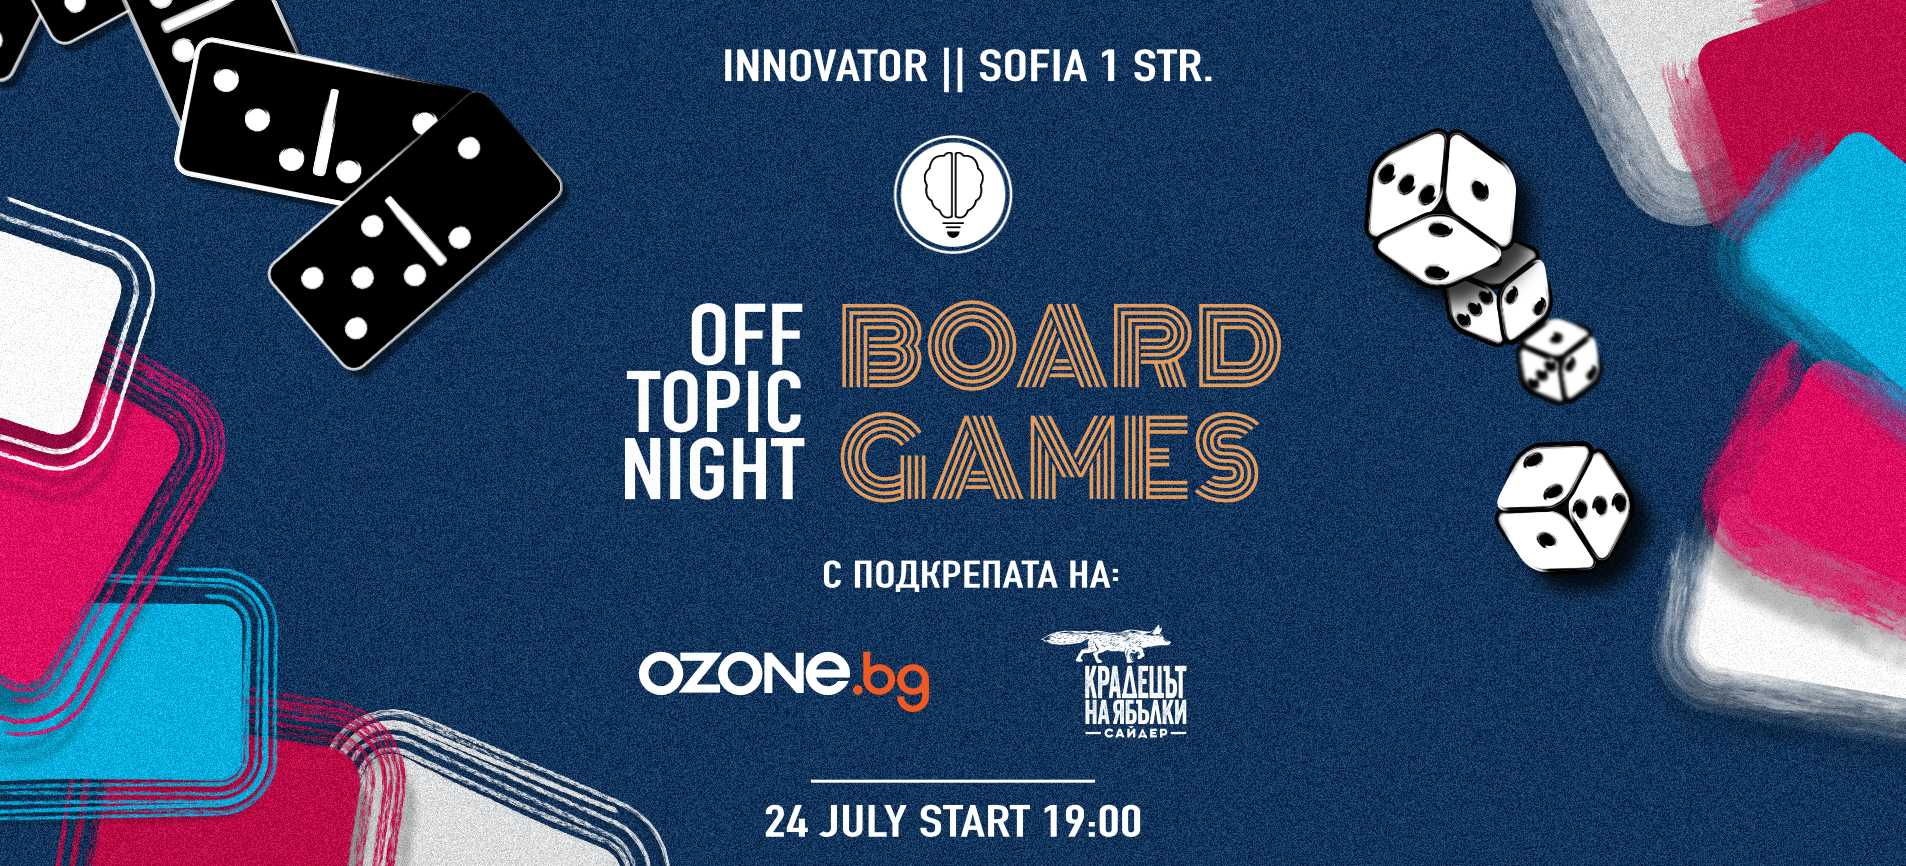 OFF Topic | Board Games Night 2 | Innovator Coworking Space